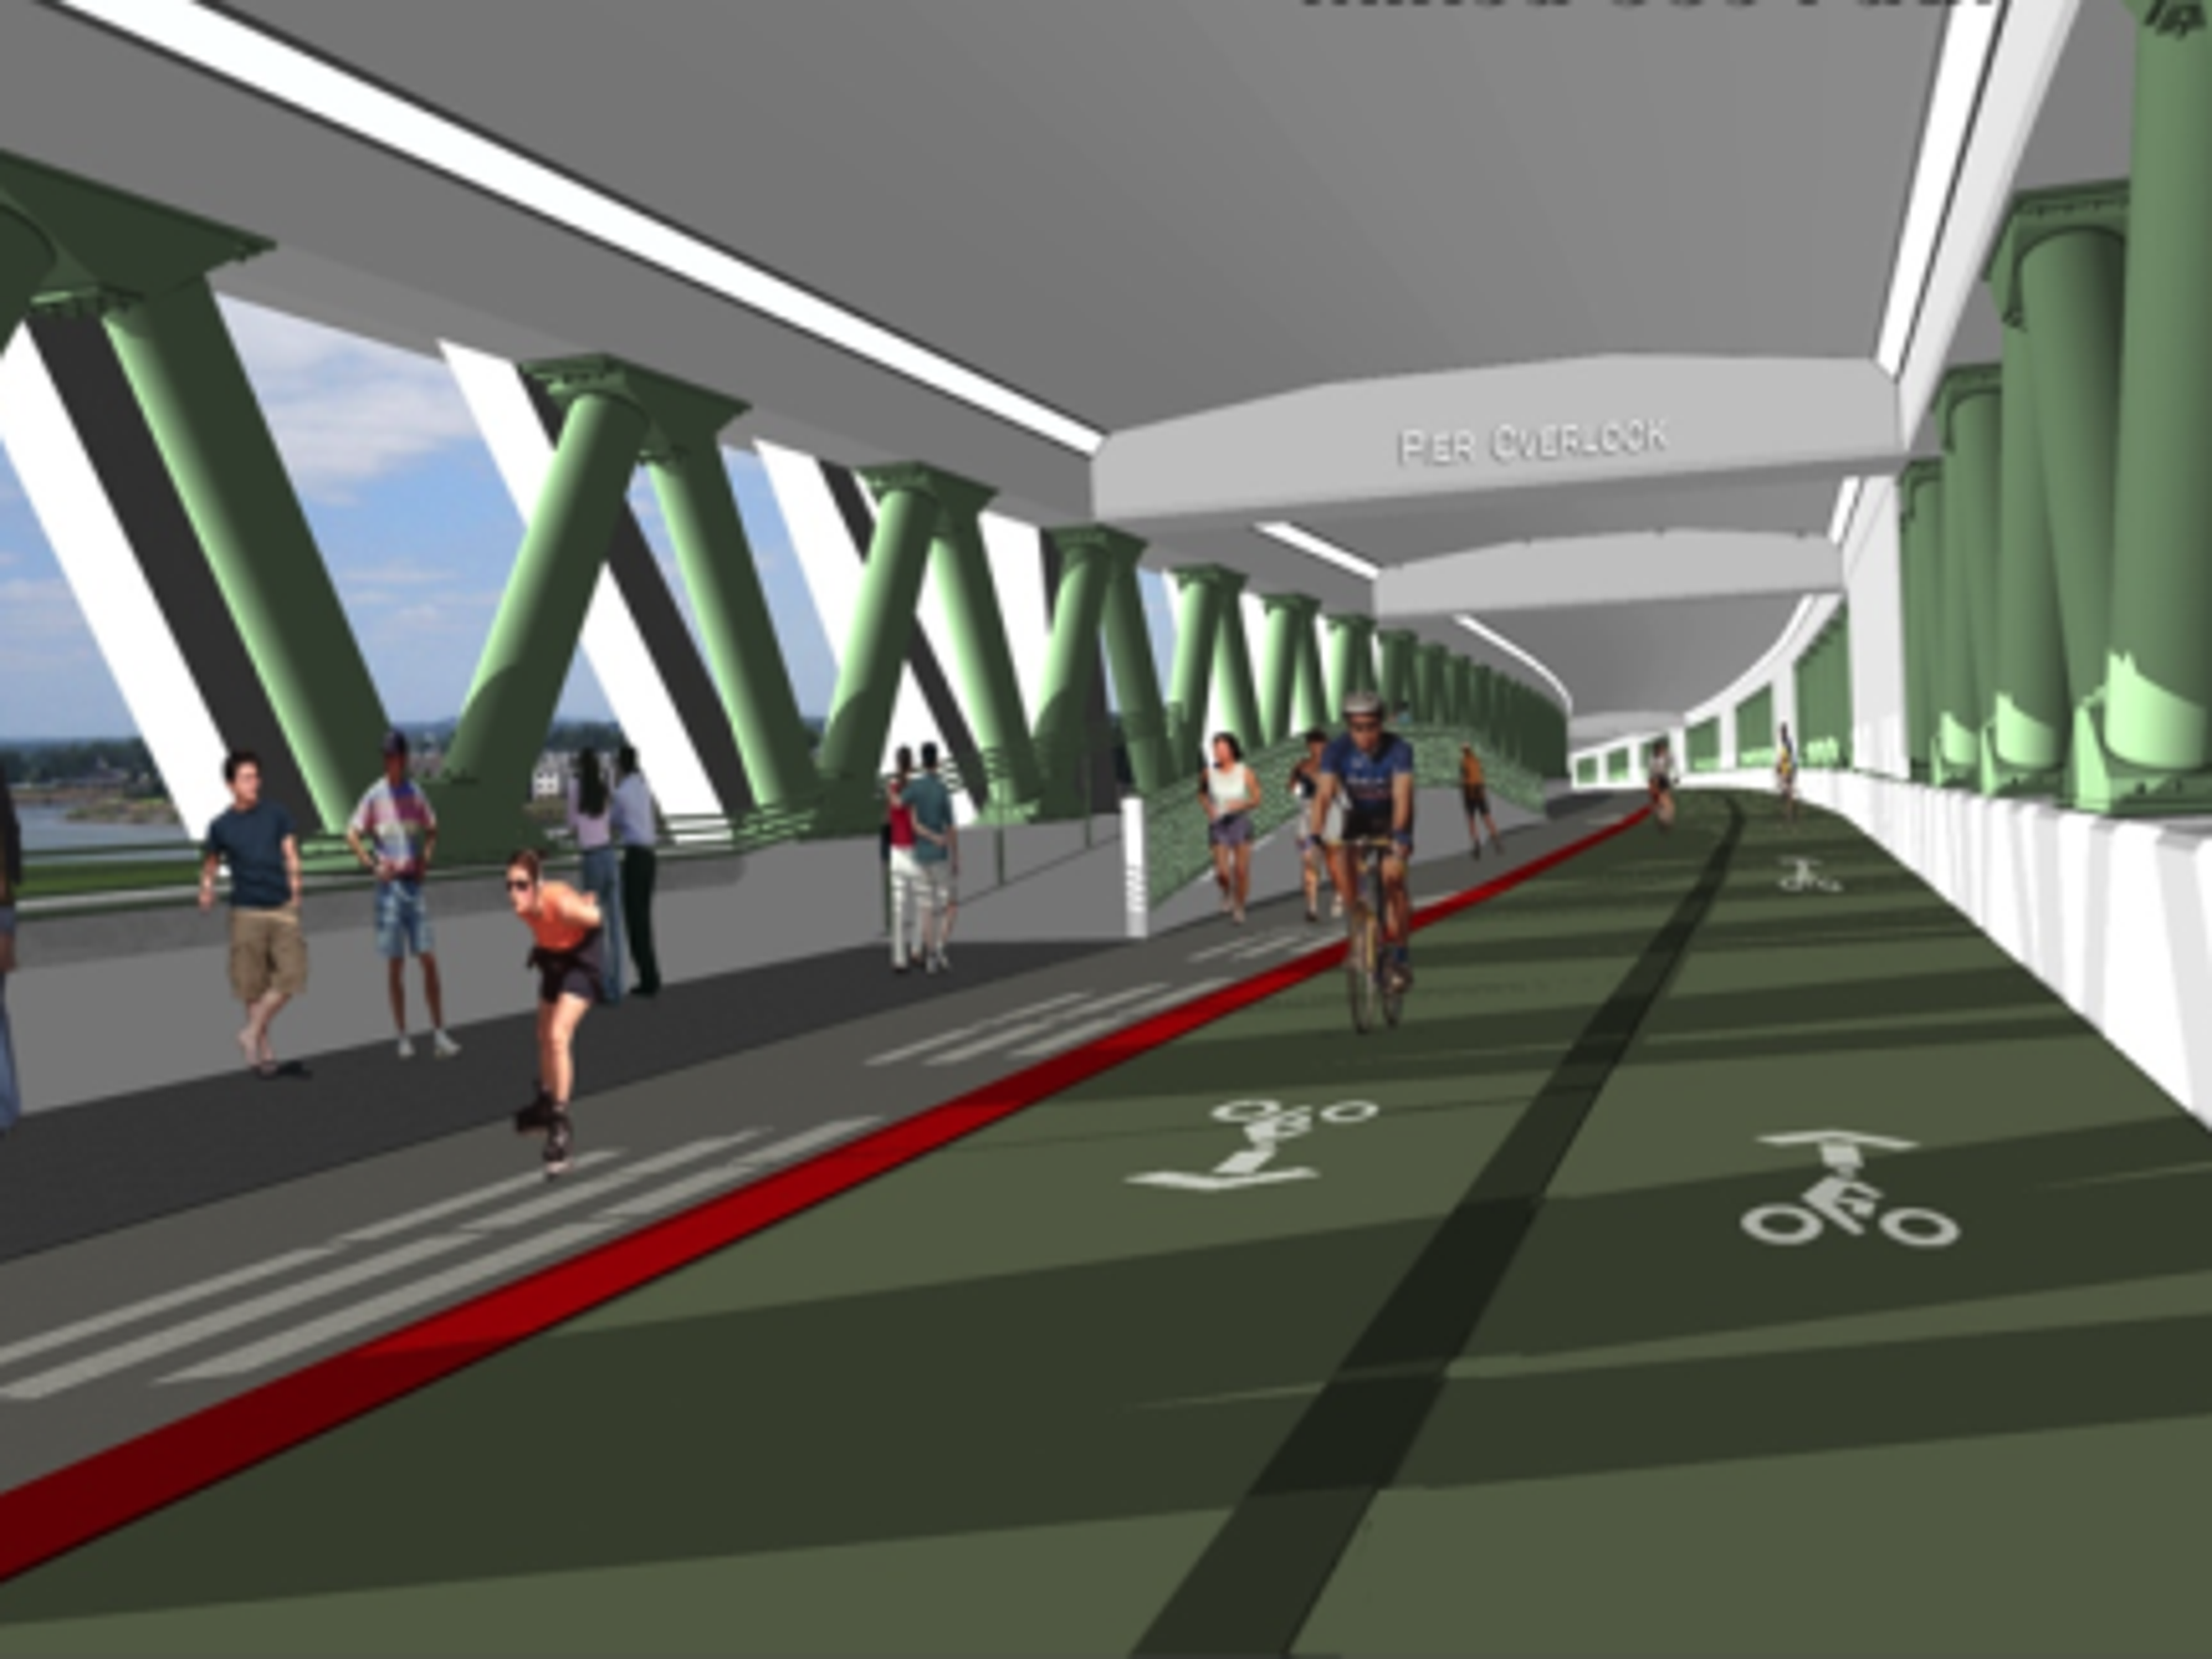 Rendering of the pedestrian and bicycle deck, underneath